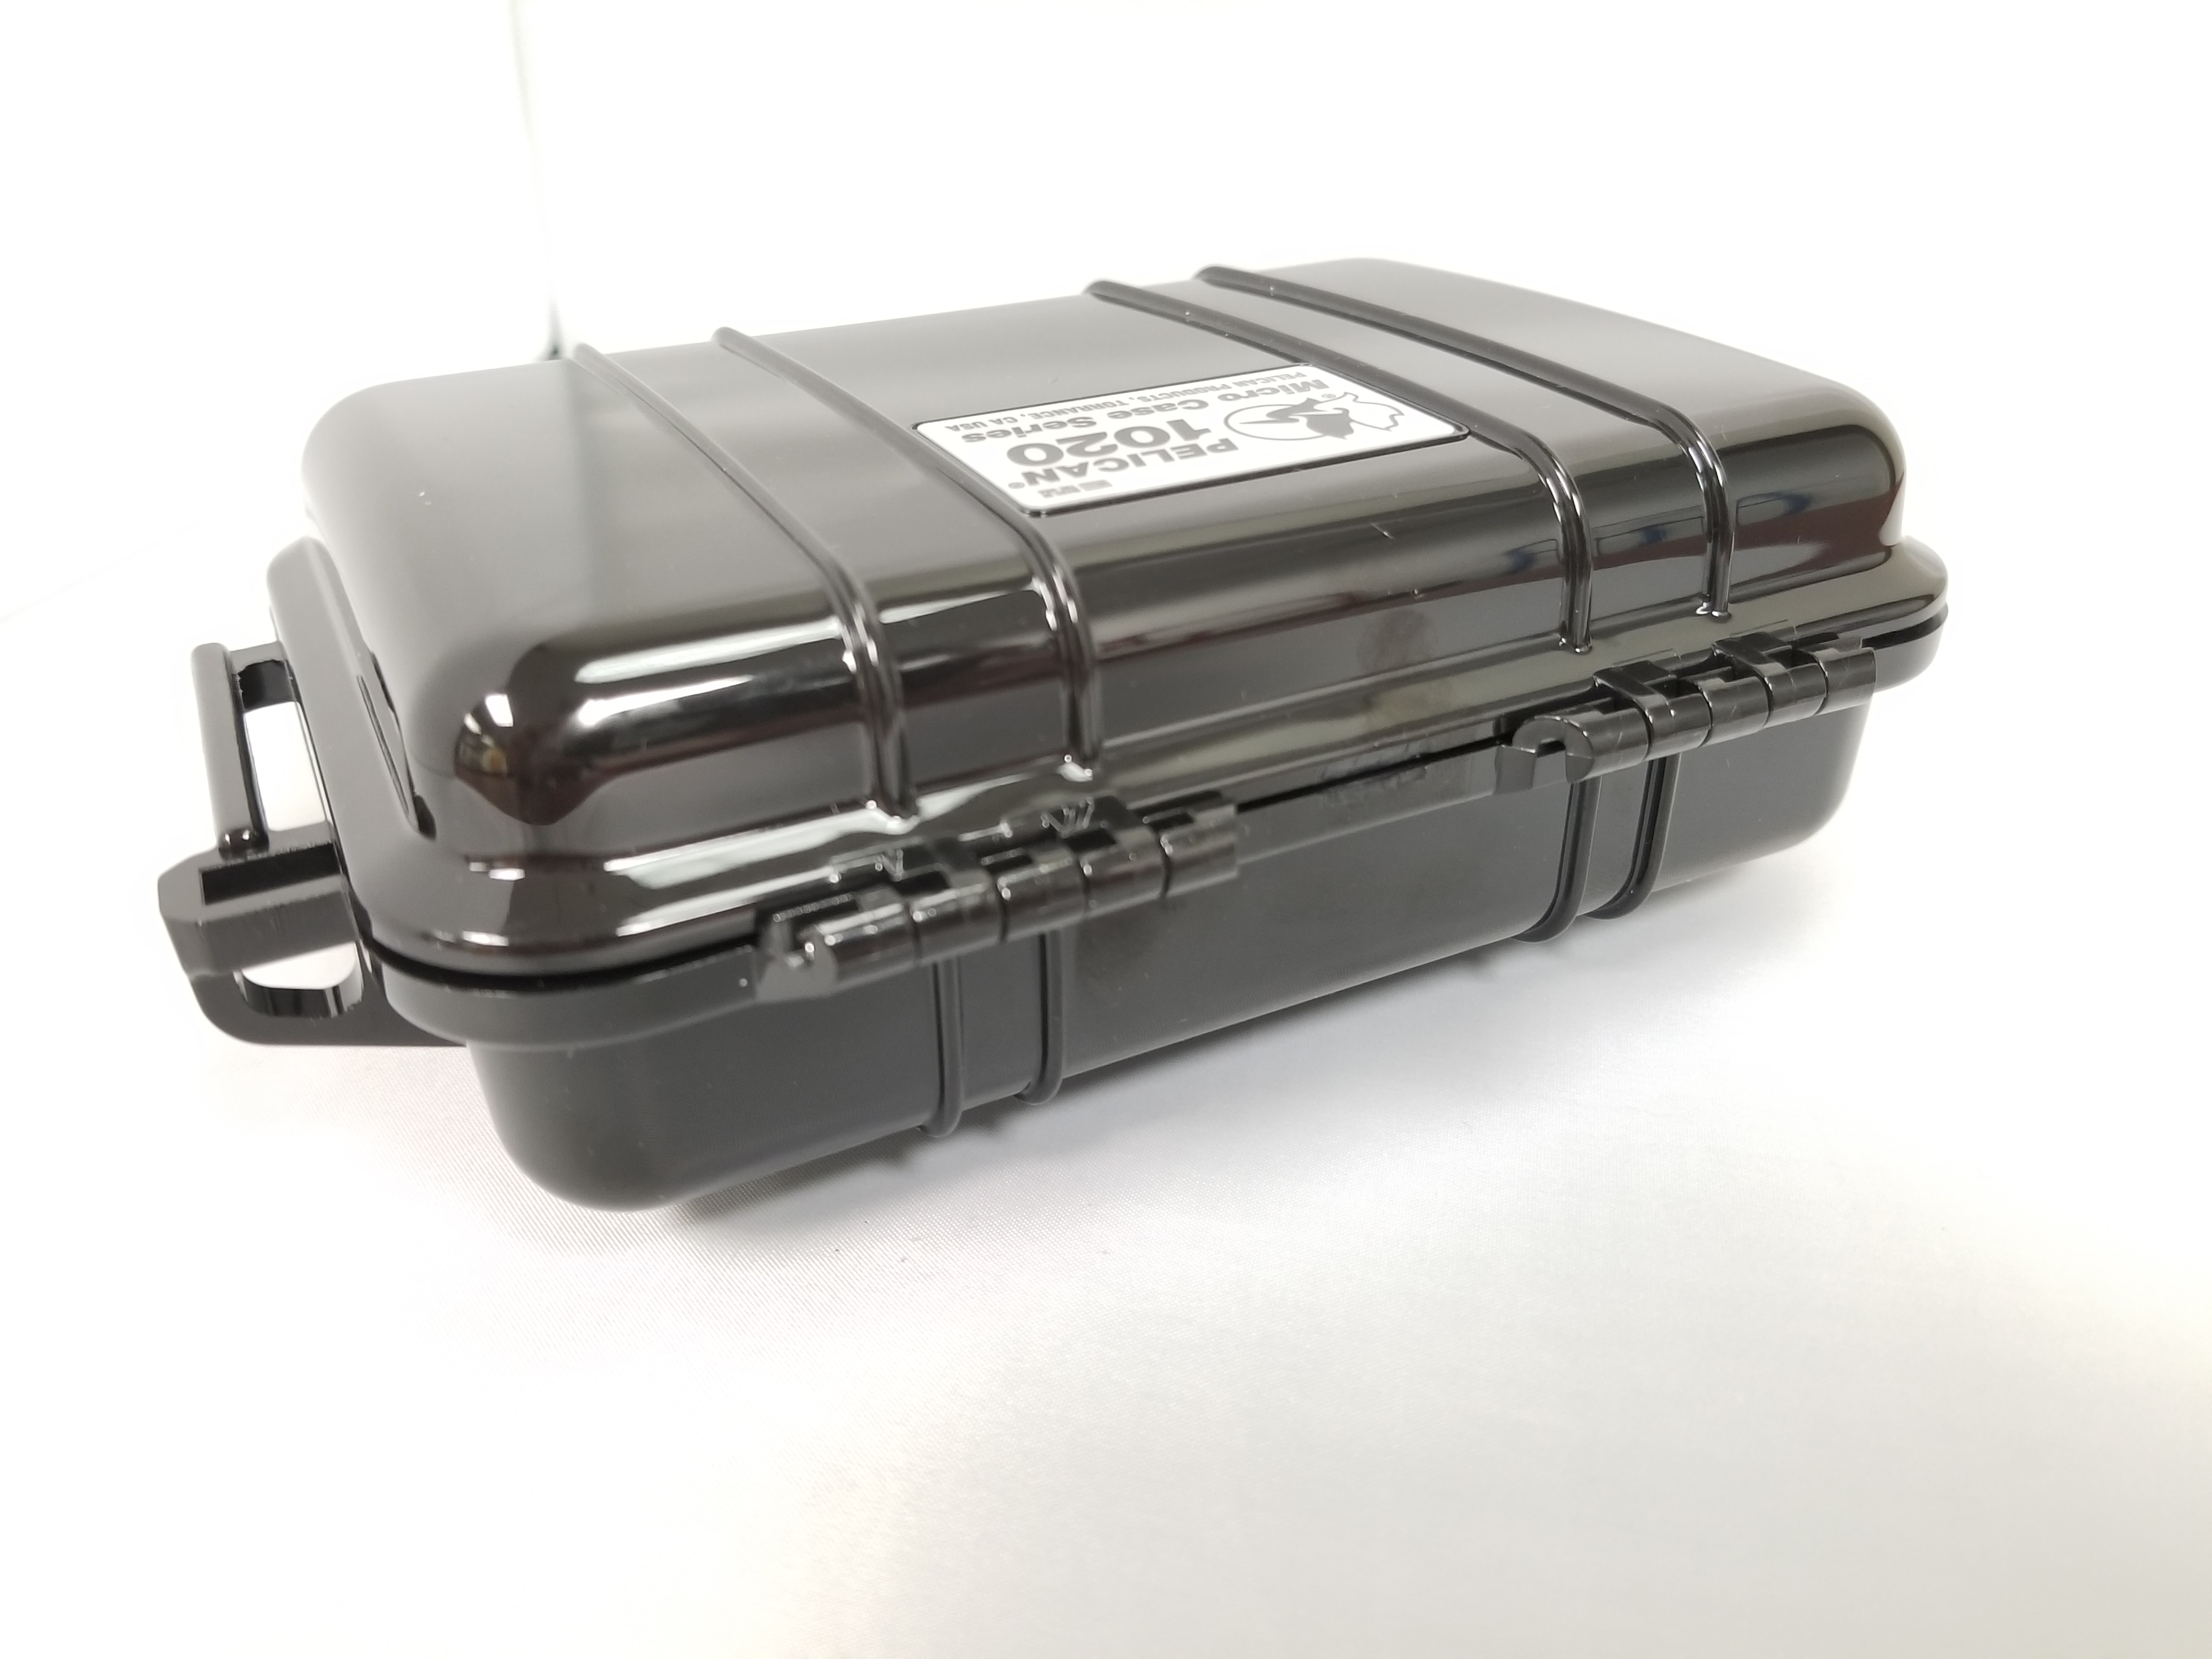 GTM 1020 Extended Battery Pack for Multi-Purpose GPS Trackers GL200, GL300,  GL300W, GL300VC, GL300MA